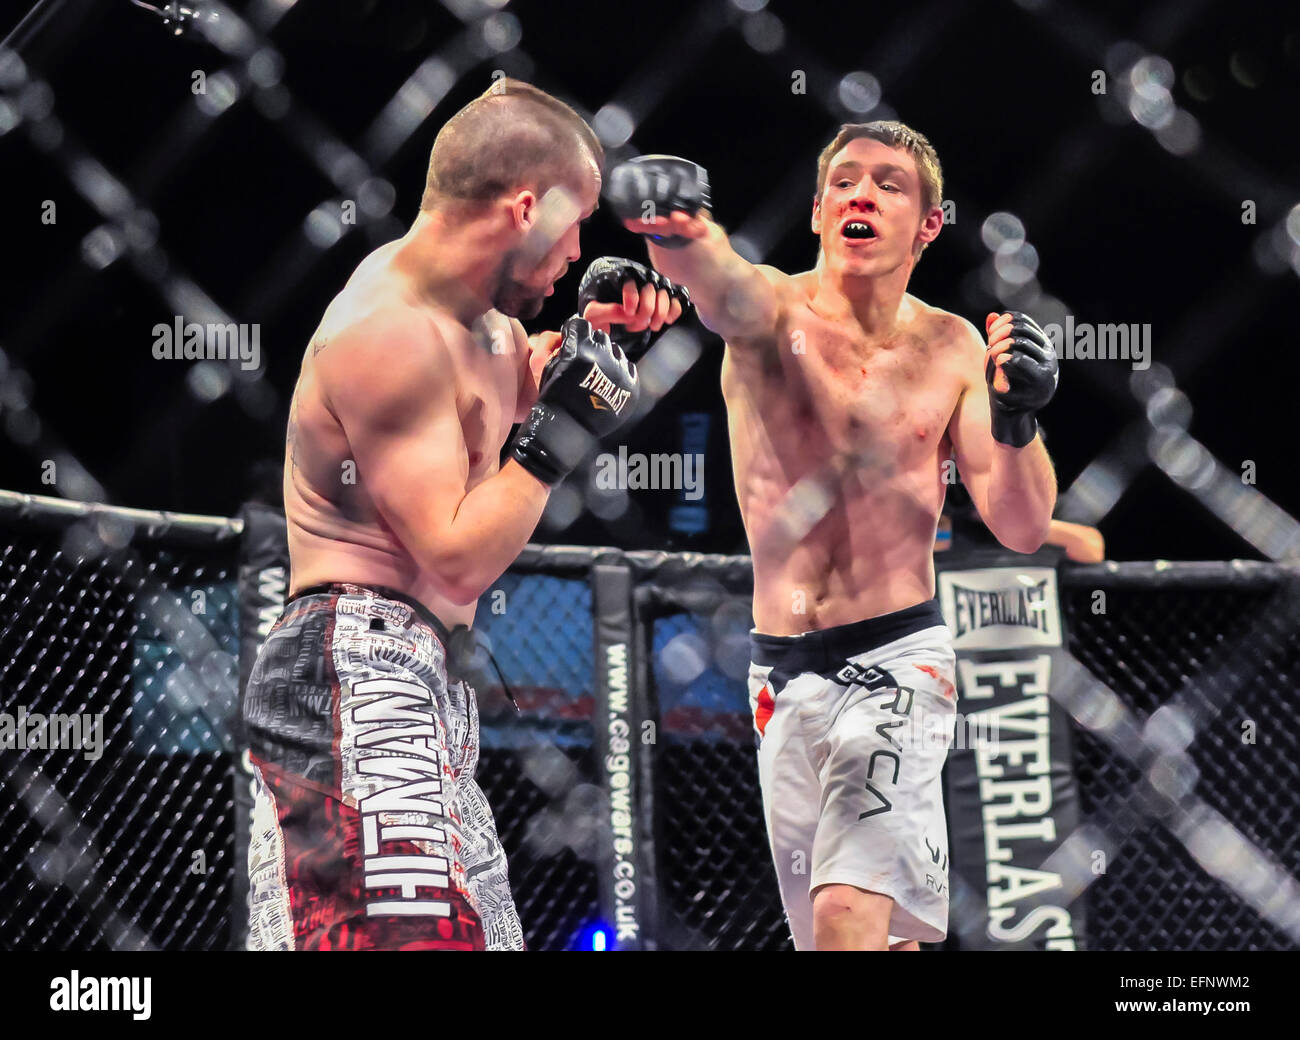 MMA fighter throws a punch to his opponent. Stock Photo